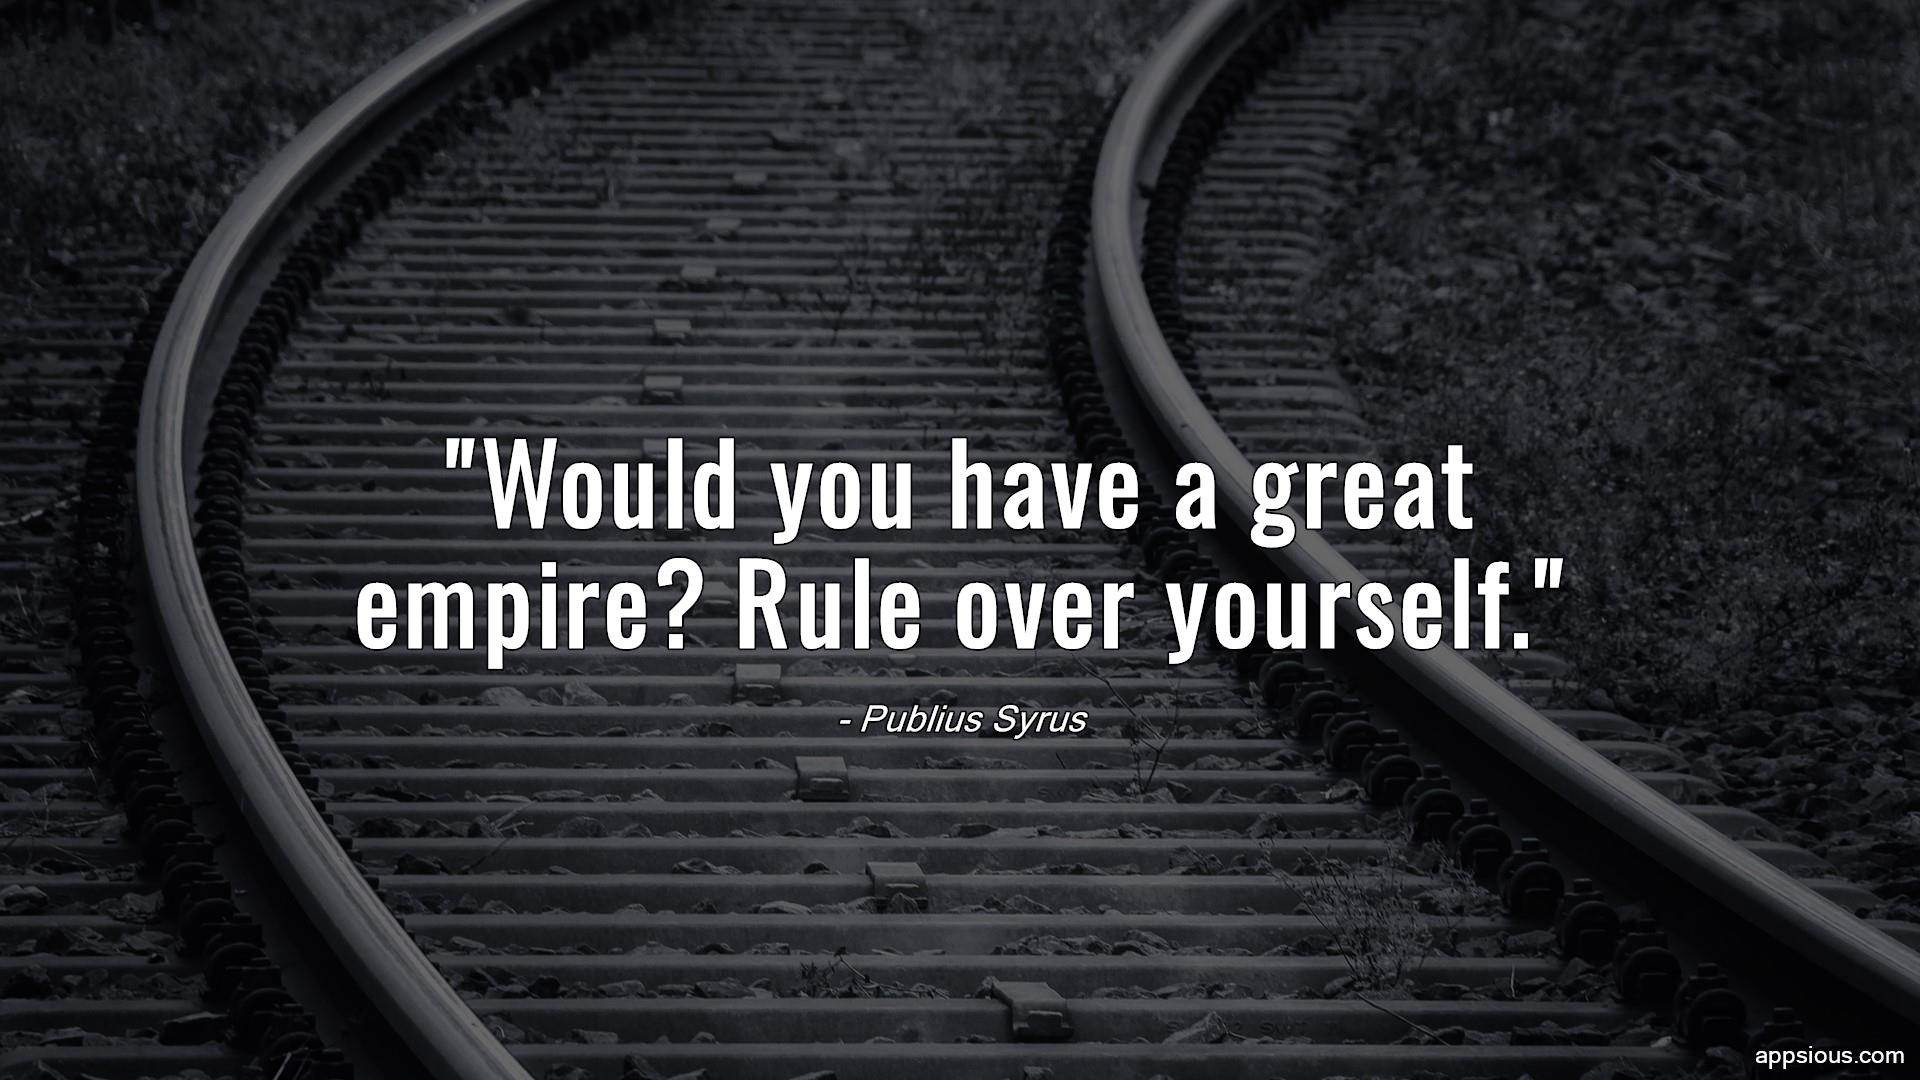 Would you have a great empire? Rule over yourself.